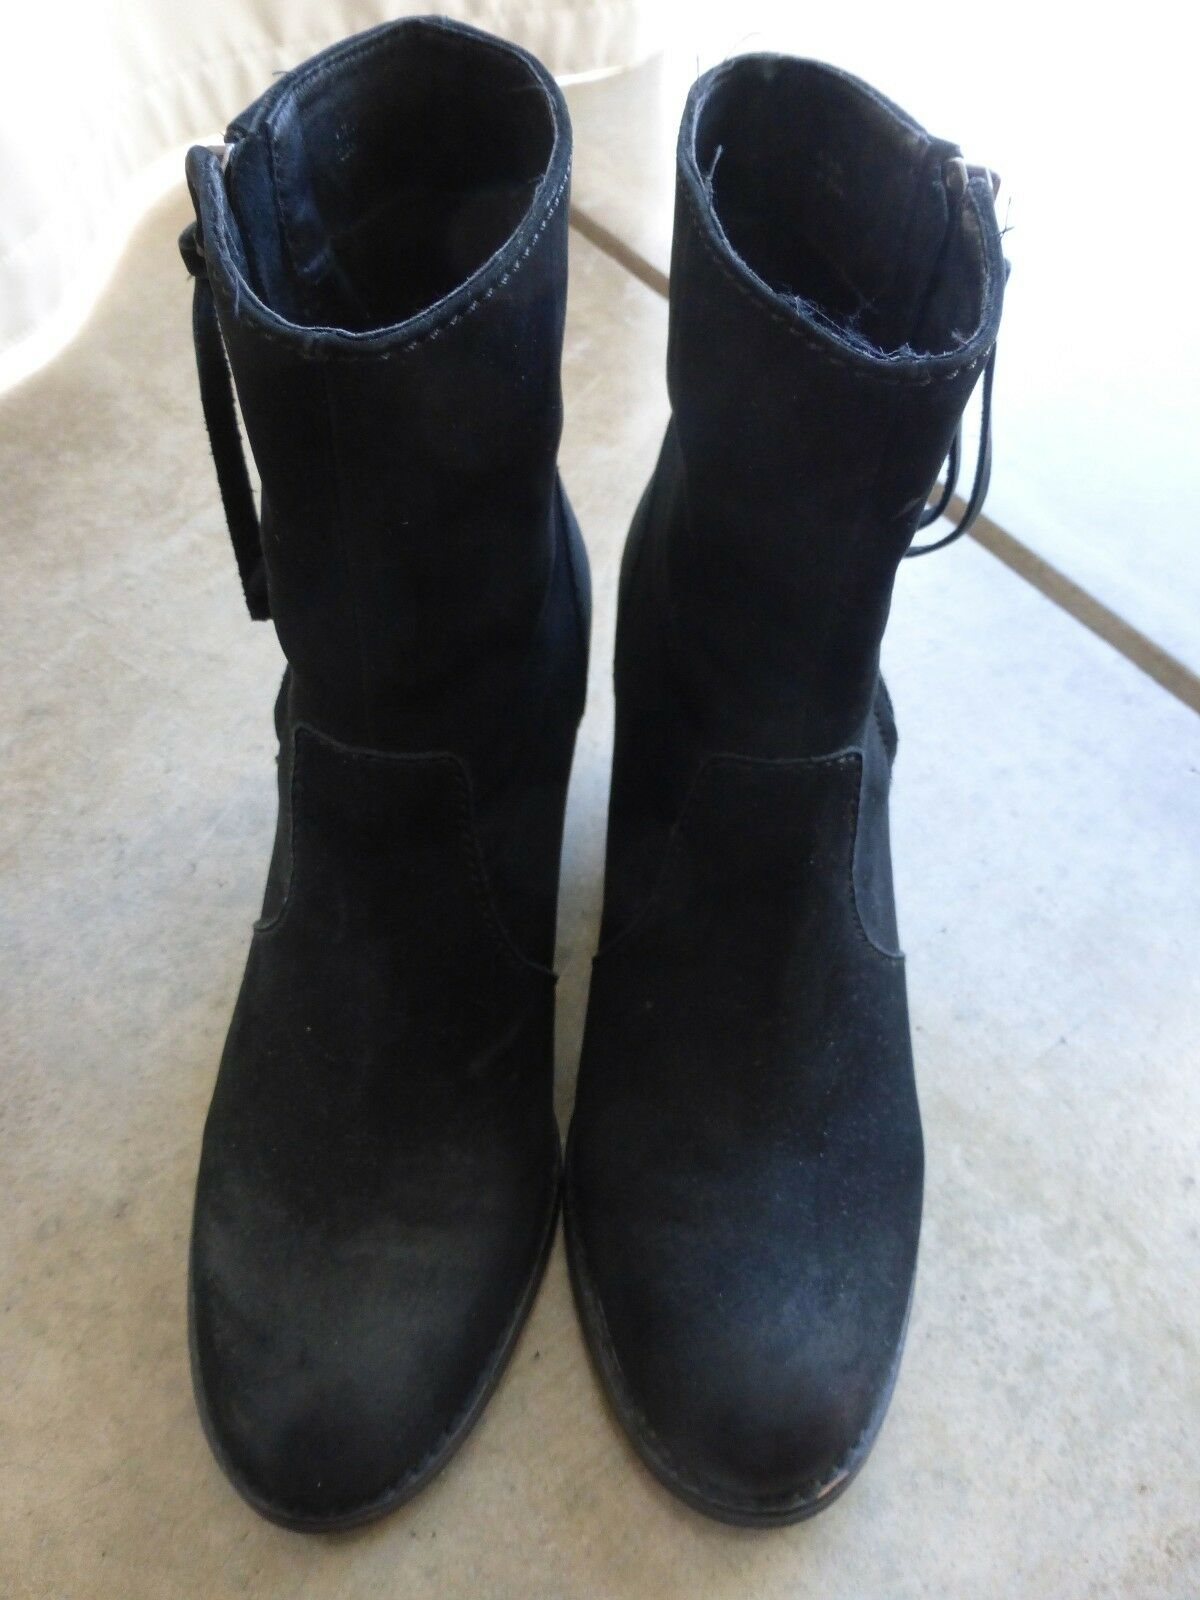 Beautiful Black Suede Booties from Aldo womens size 38 US 7.5